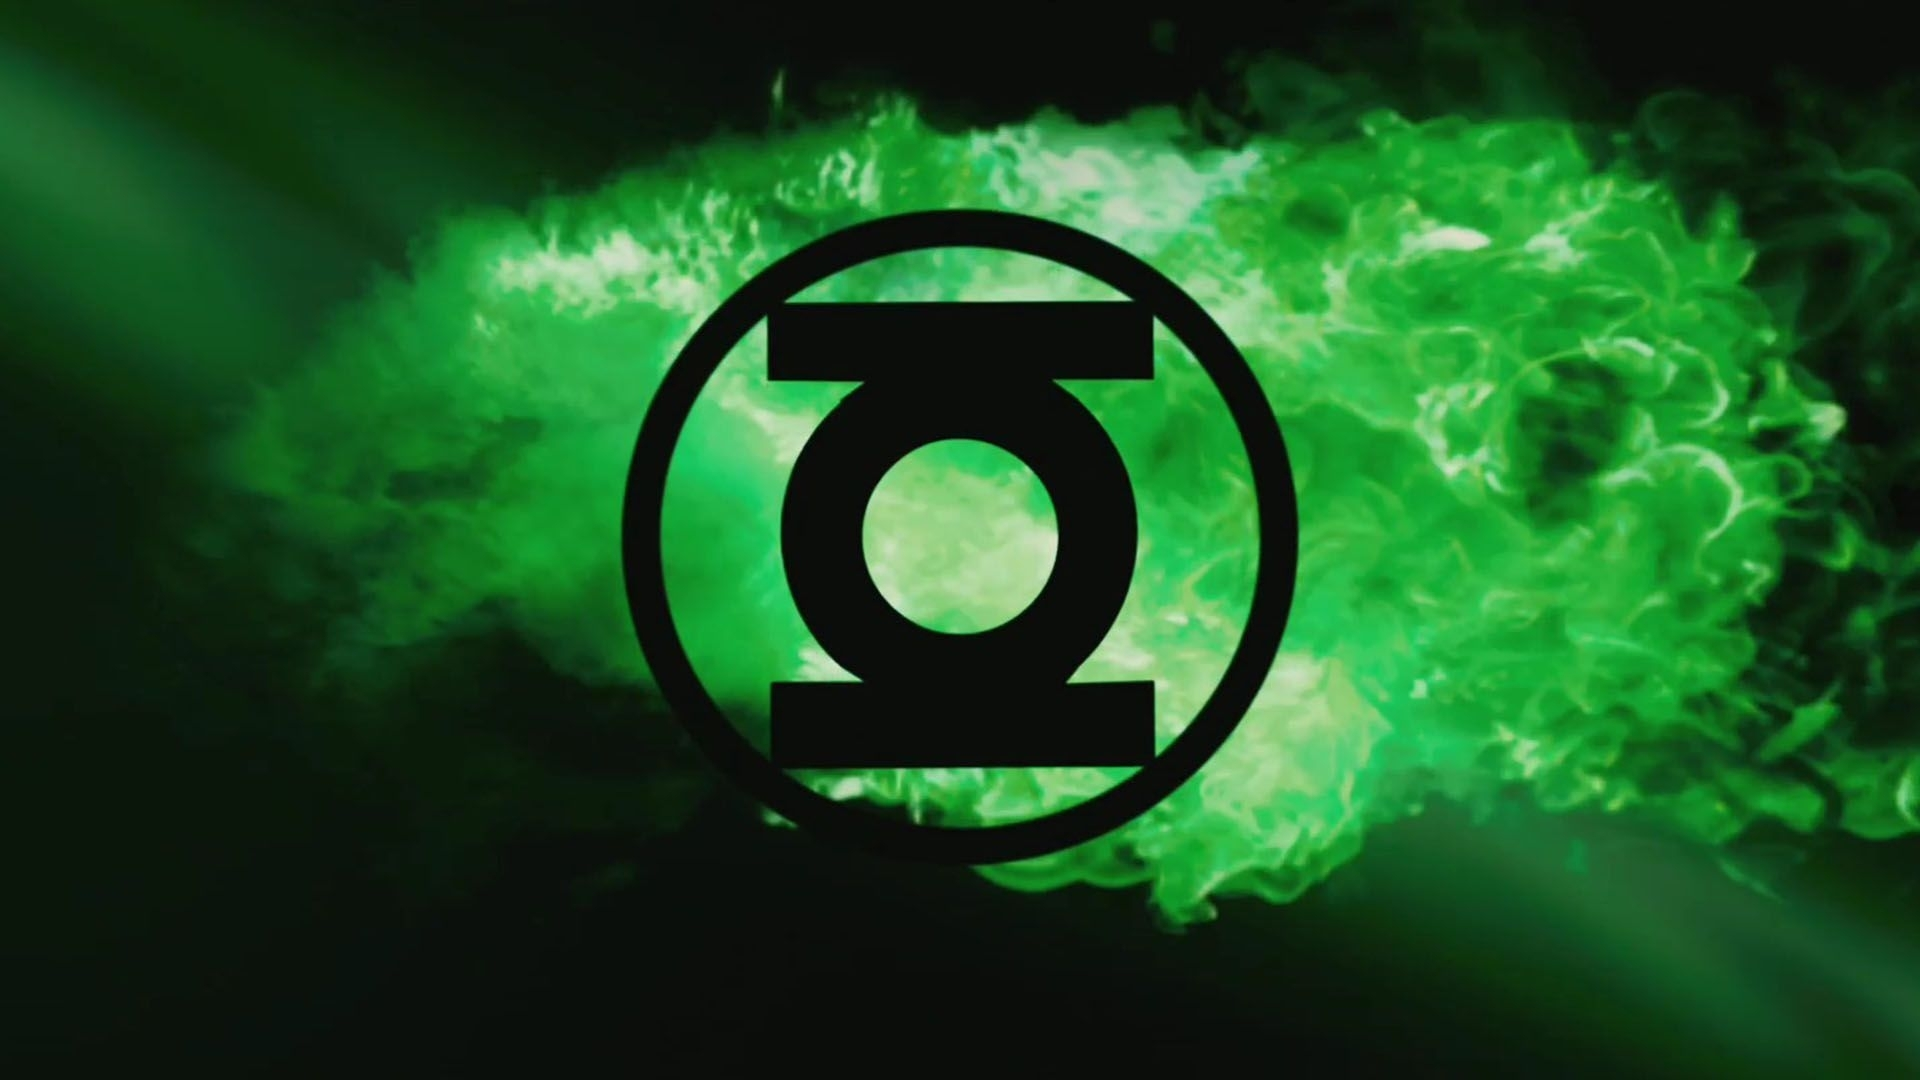 green lantern wallpapers - wallpaper cave | all wallpapers